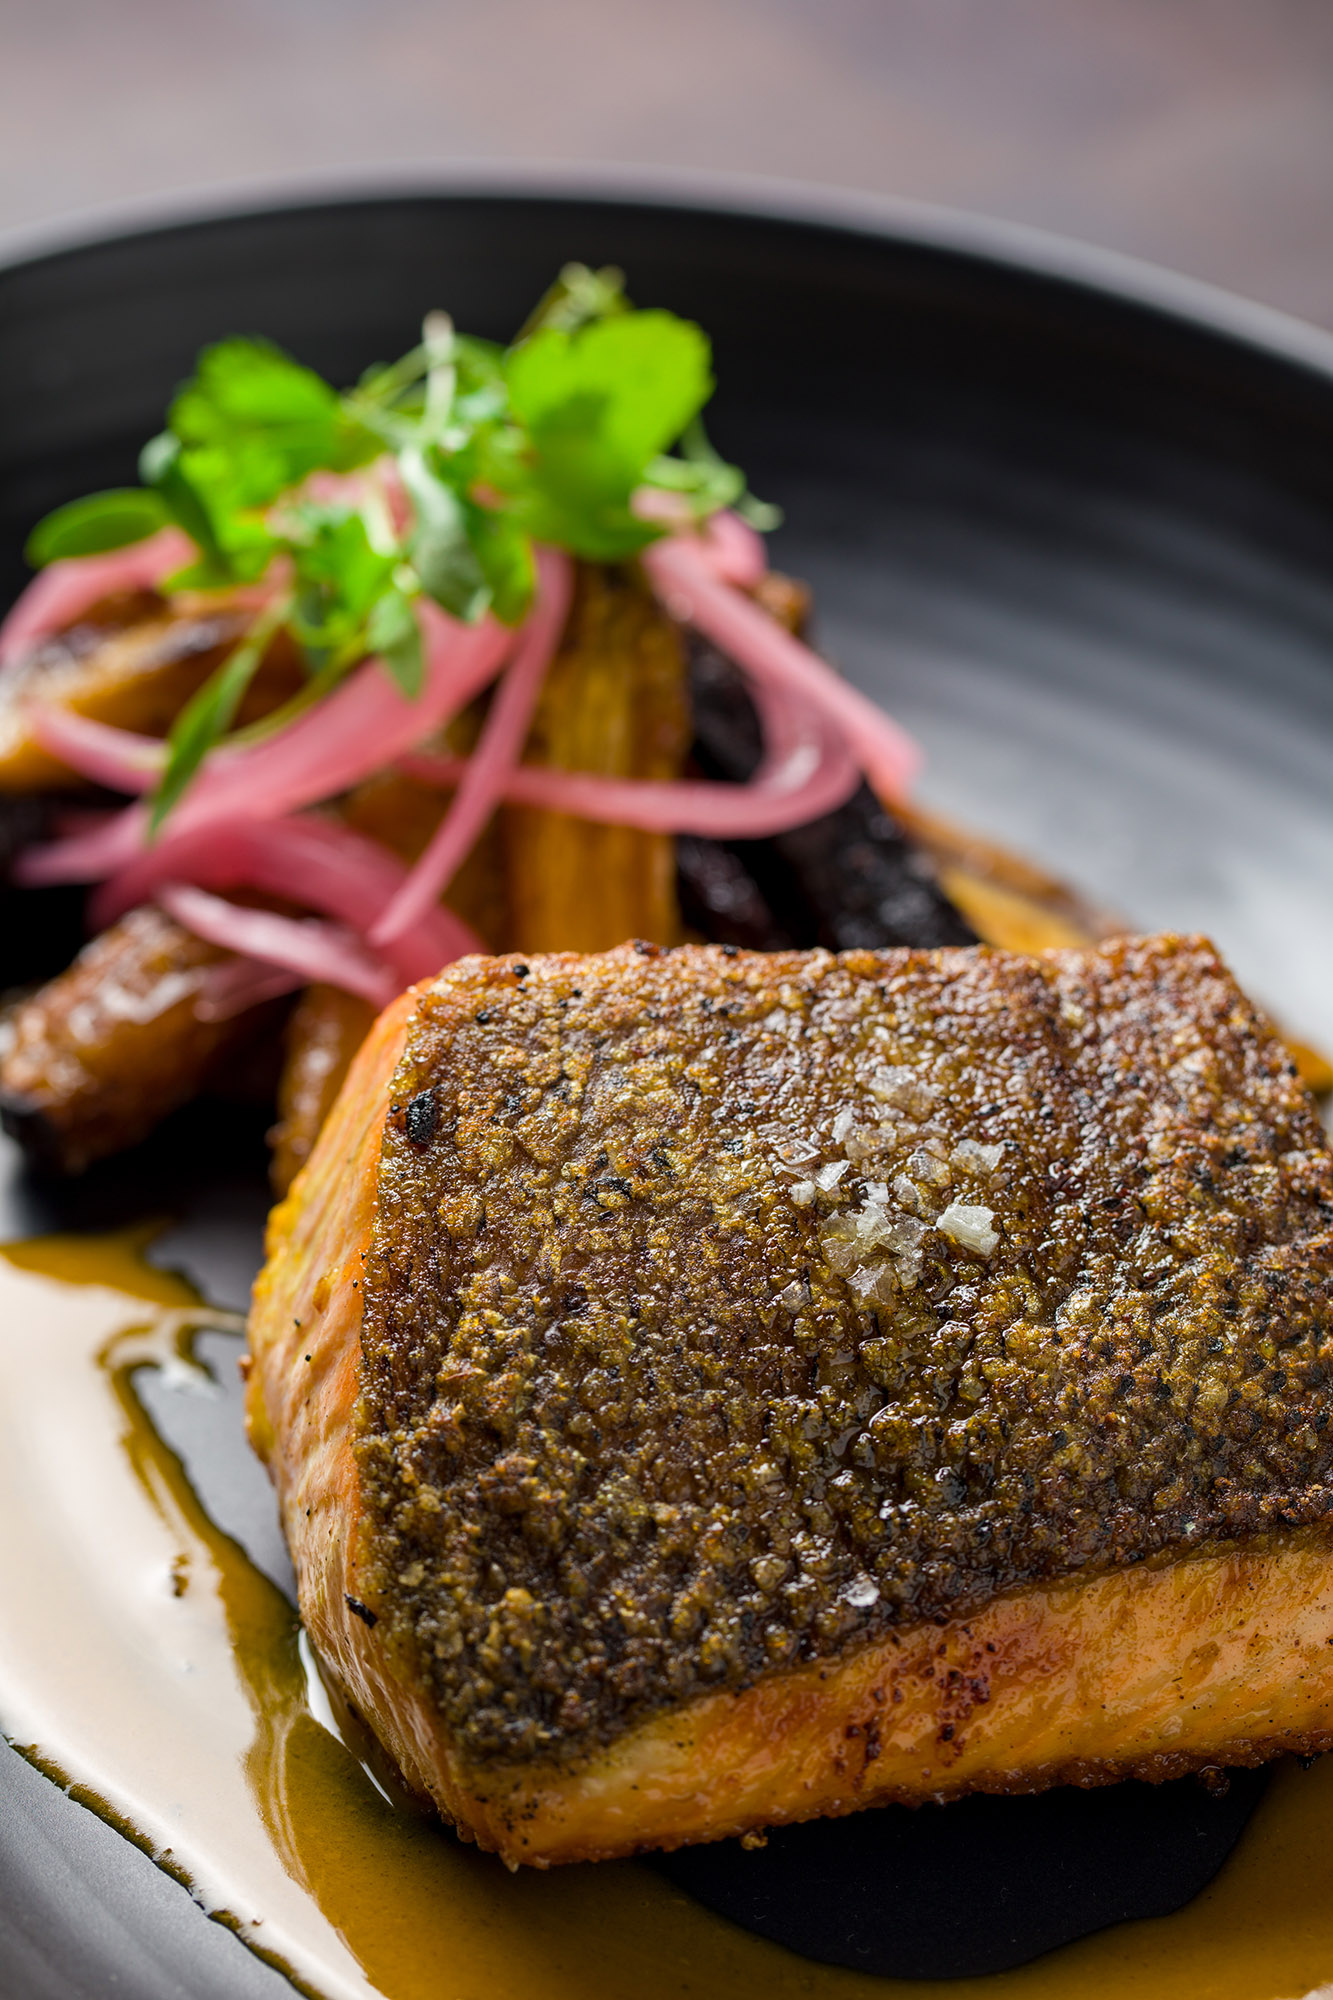 Wild Columbia River King Salmon is here! This fish is known for its rich marbling and distinct texture.